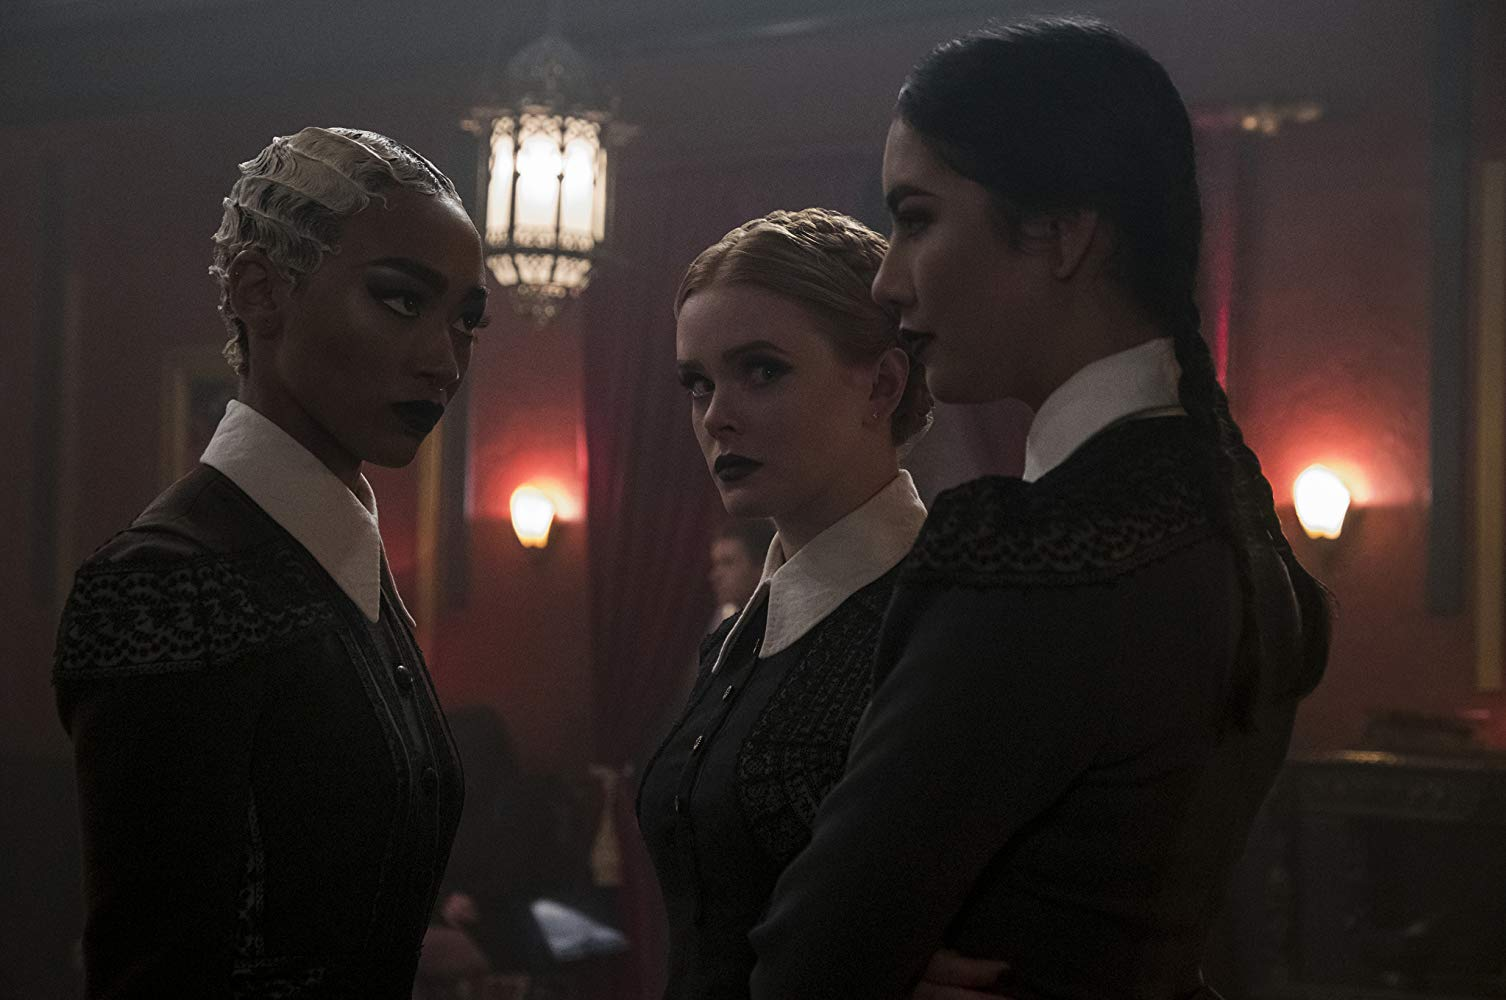 Prudence, Dorcas, and Agatha on The Chilling Adventures of Sabrina